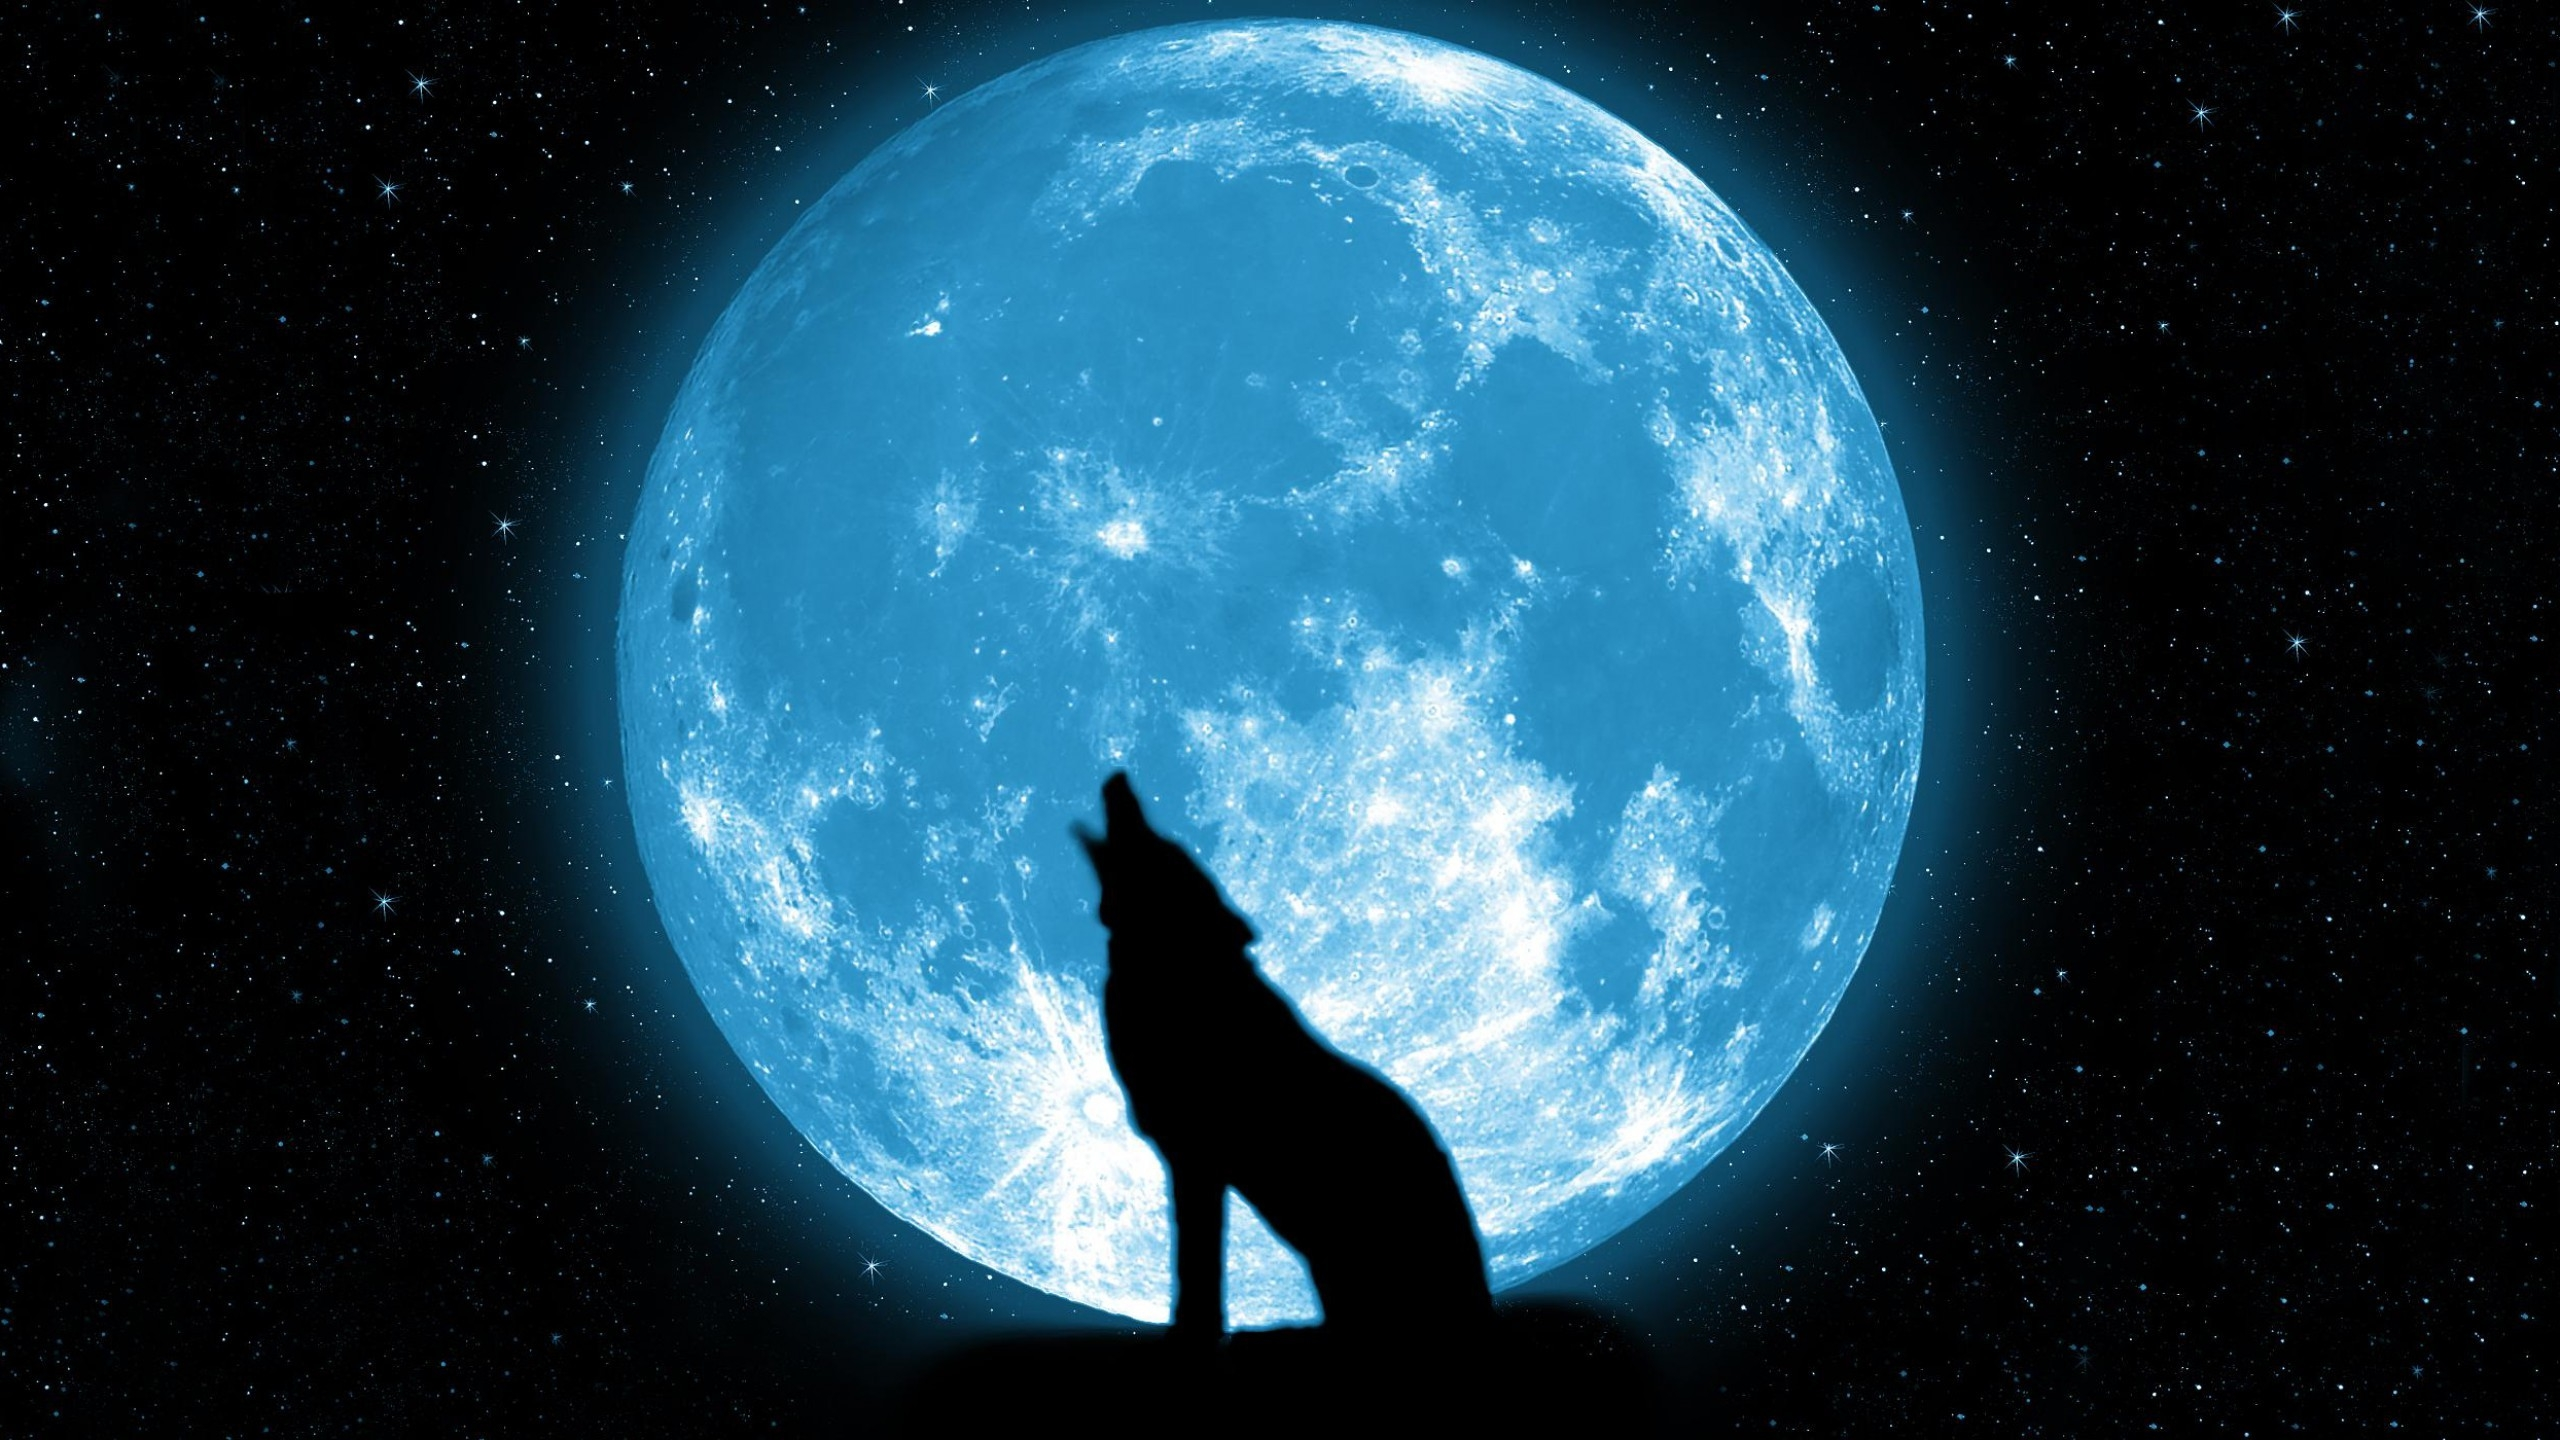 wolf howling on the moon Wallpapers HD 2560x1440